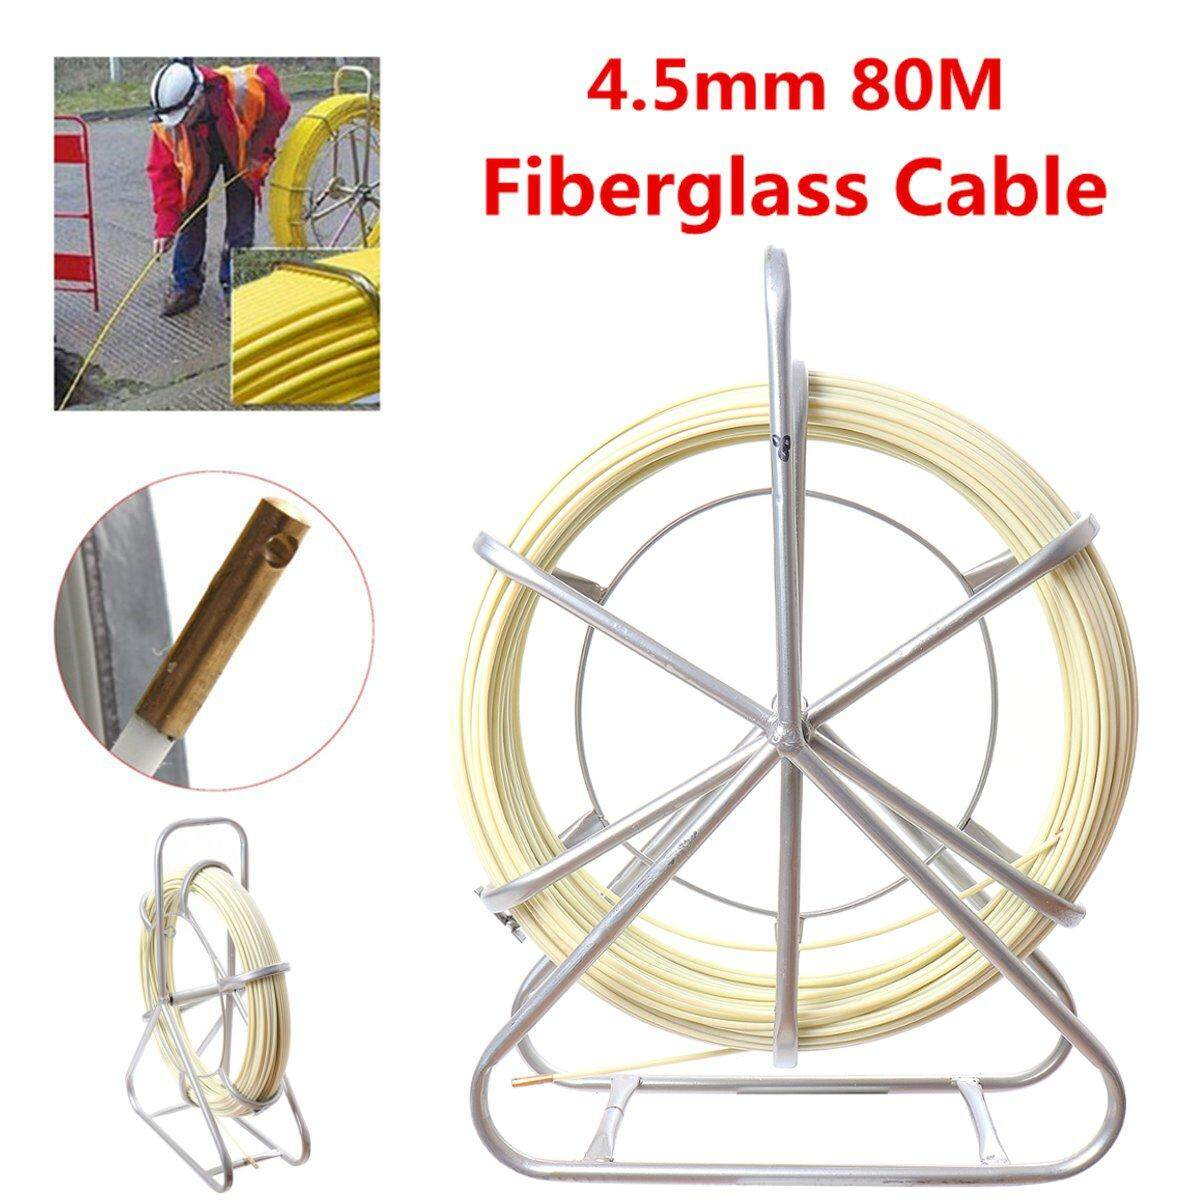 Fiberglass Wire Cable Rod Duct Electric Tape Running Puller Lead Tools